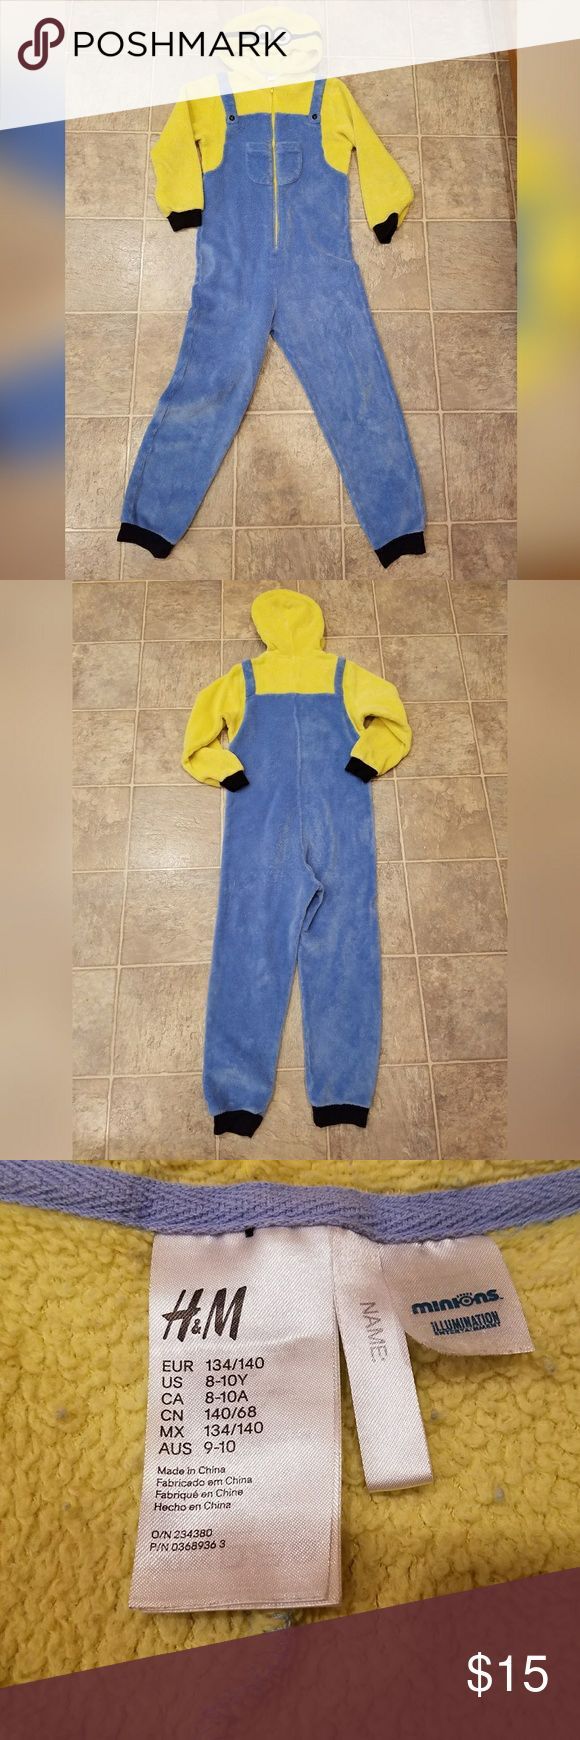 Awesome, kid's, MINIONS outfit! So soft and comfy. Excellent condition. Brand is H&M. Size is 8-10Y. 100% polyester. Zips up front. H&M Costumes